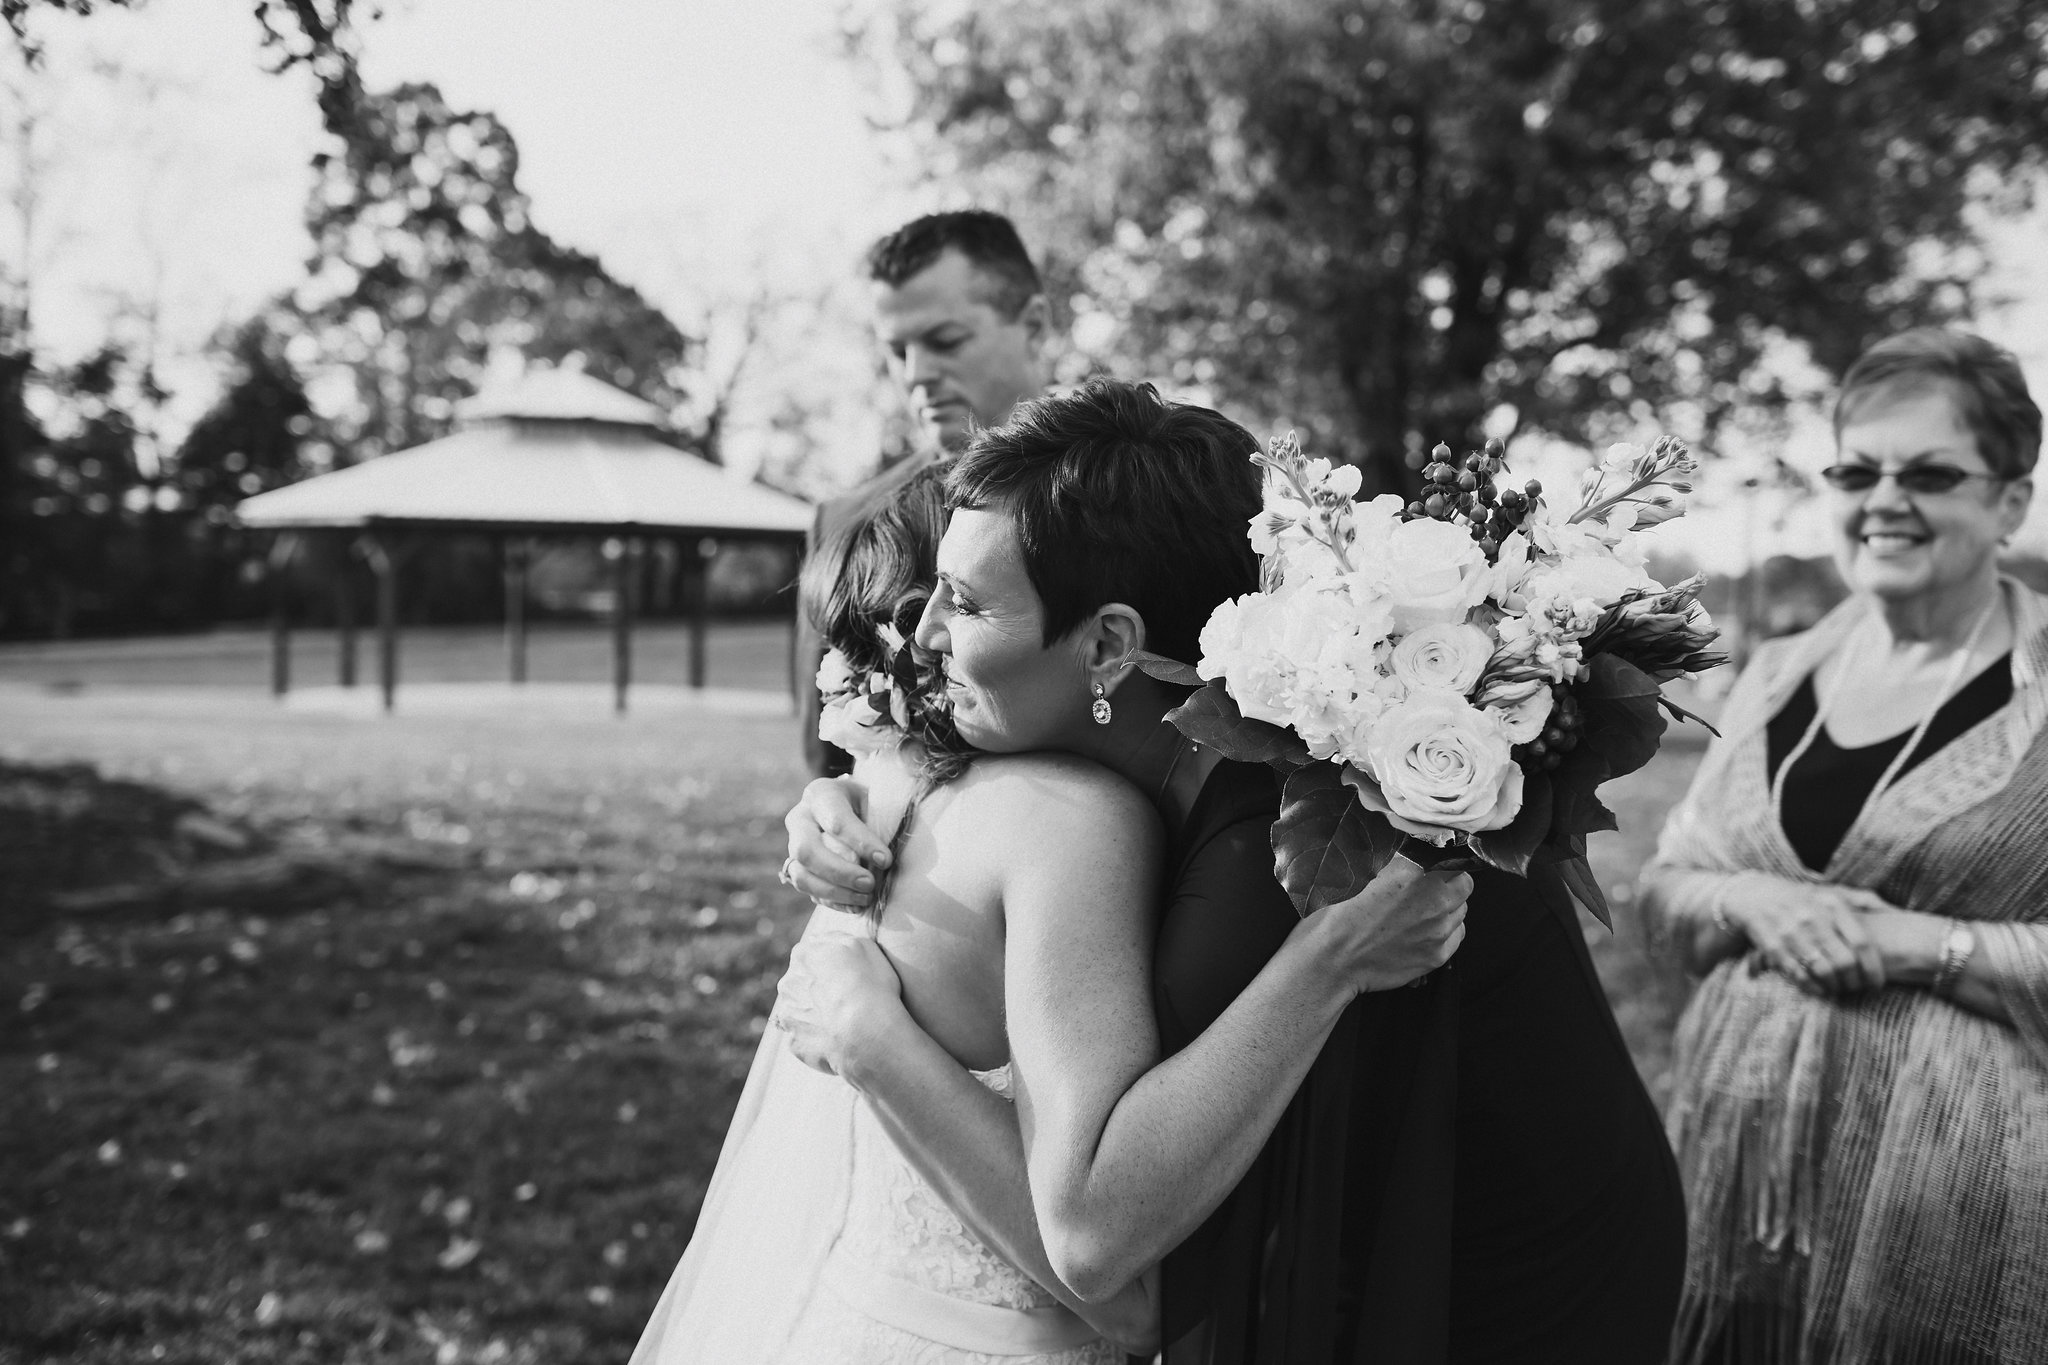 Ashley&NathanMarried2017-11-10at19.26.54PM68.jpg